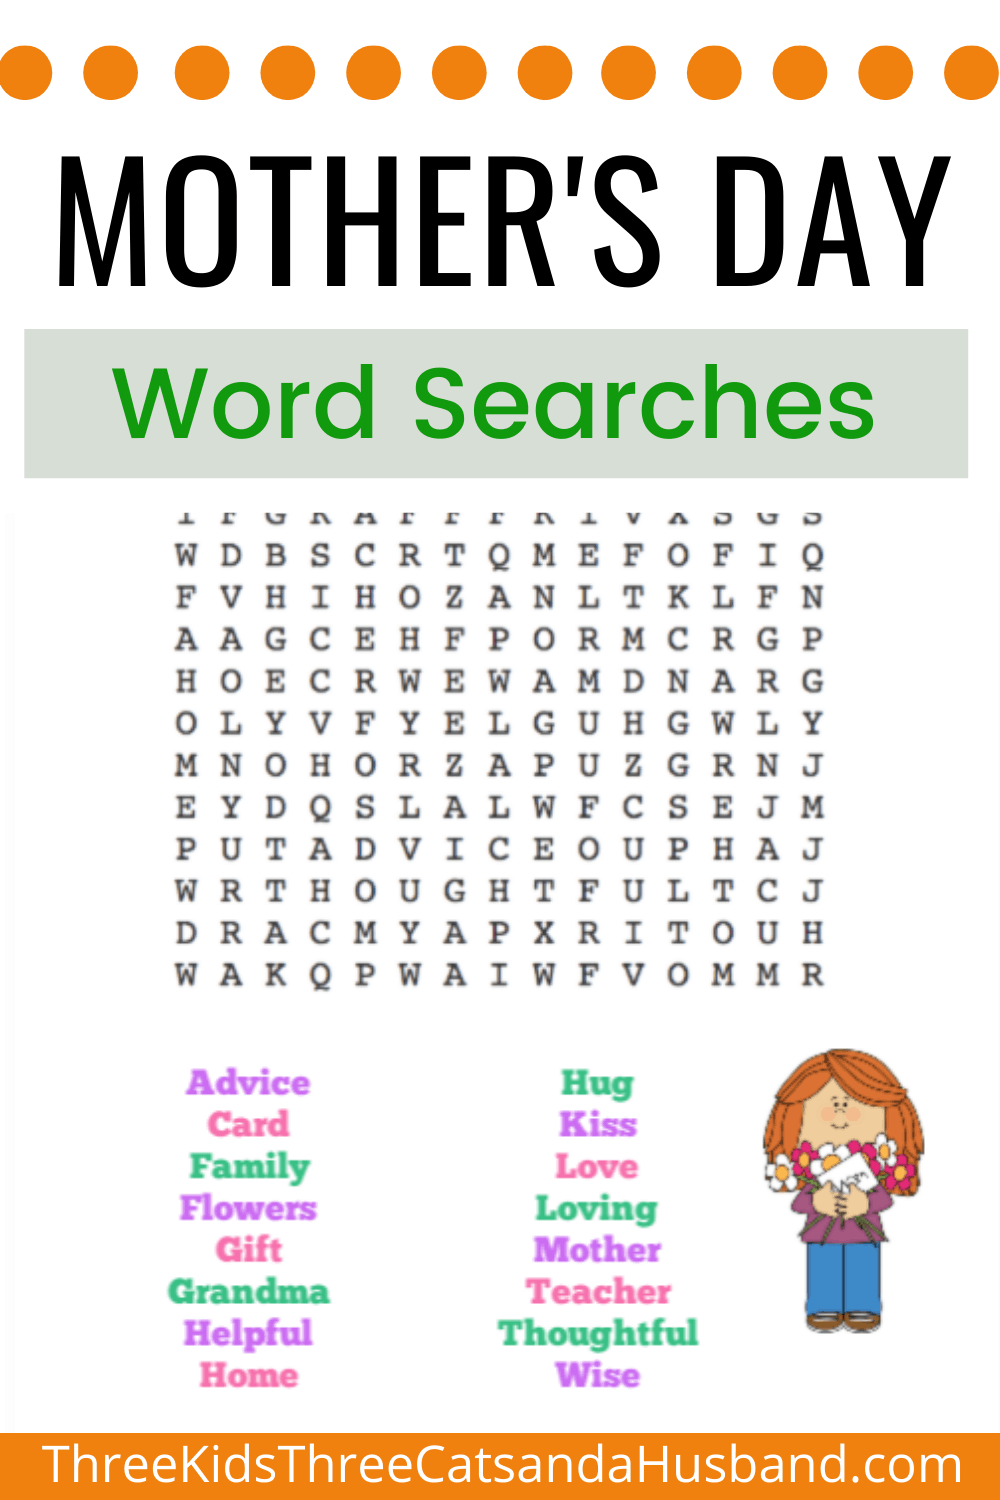 Free Printable Mothers Day Word Searches